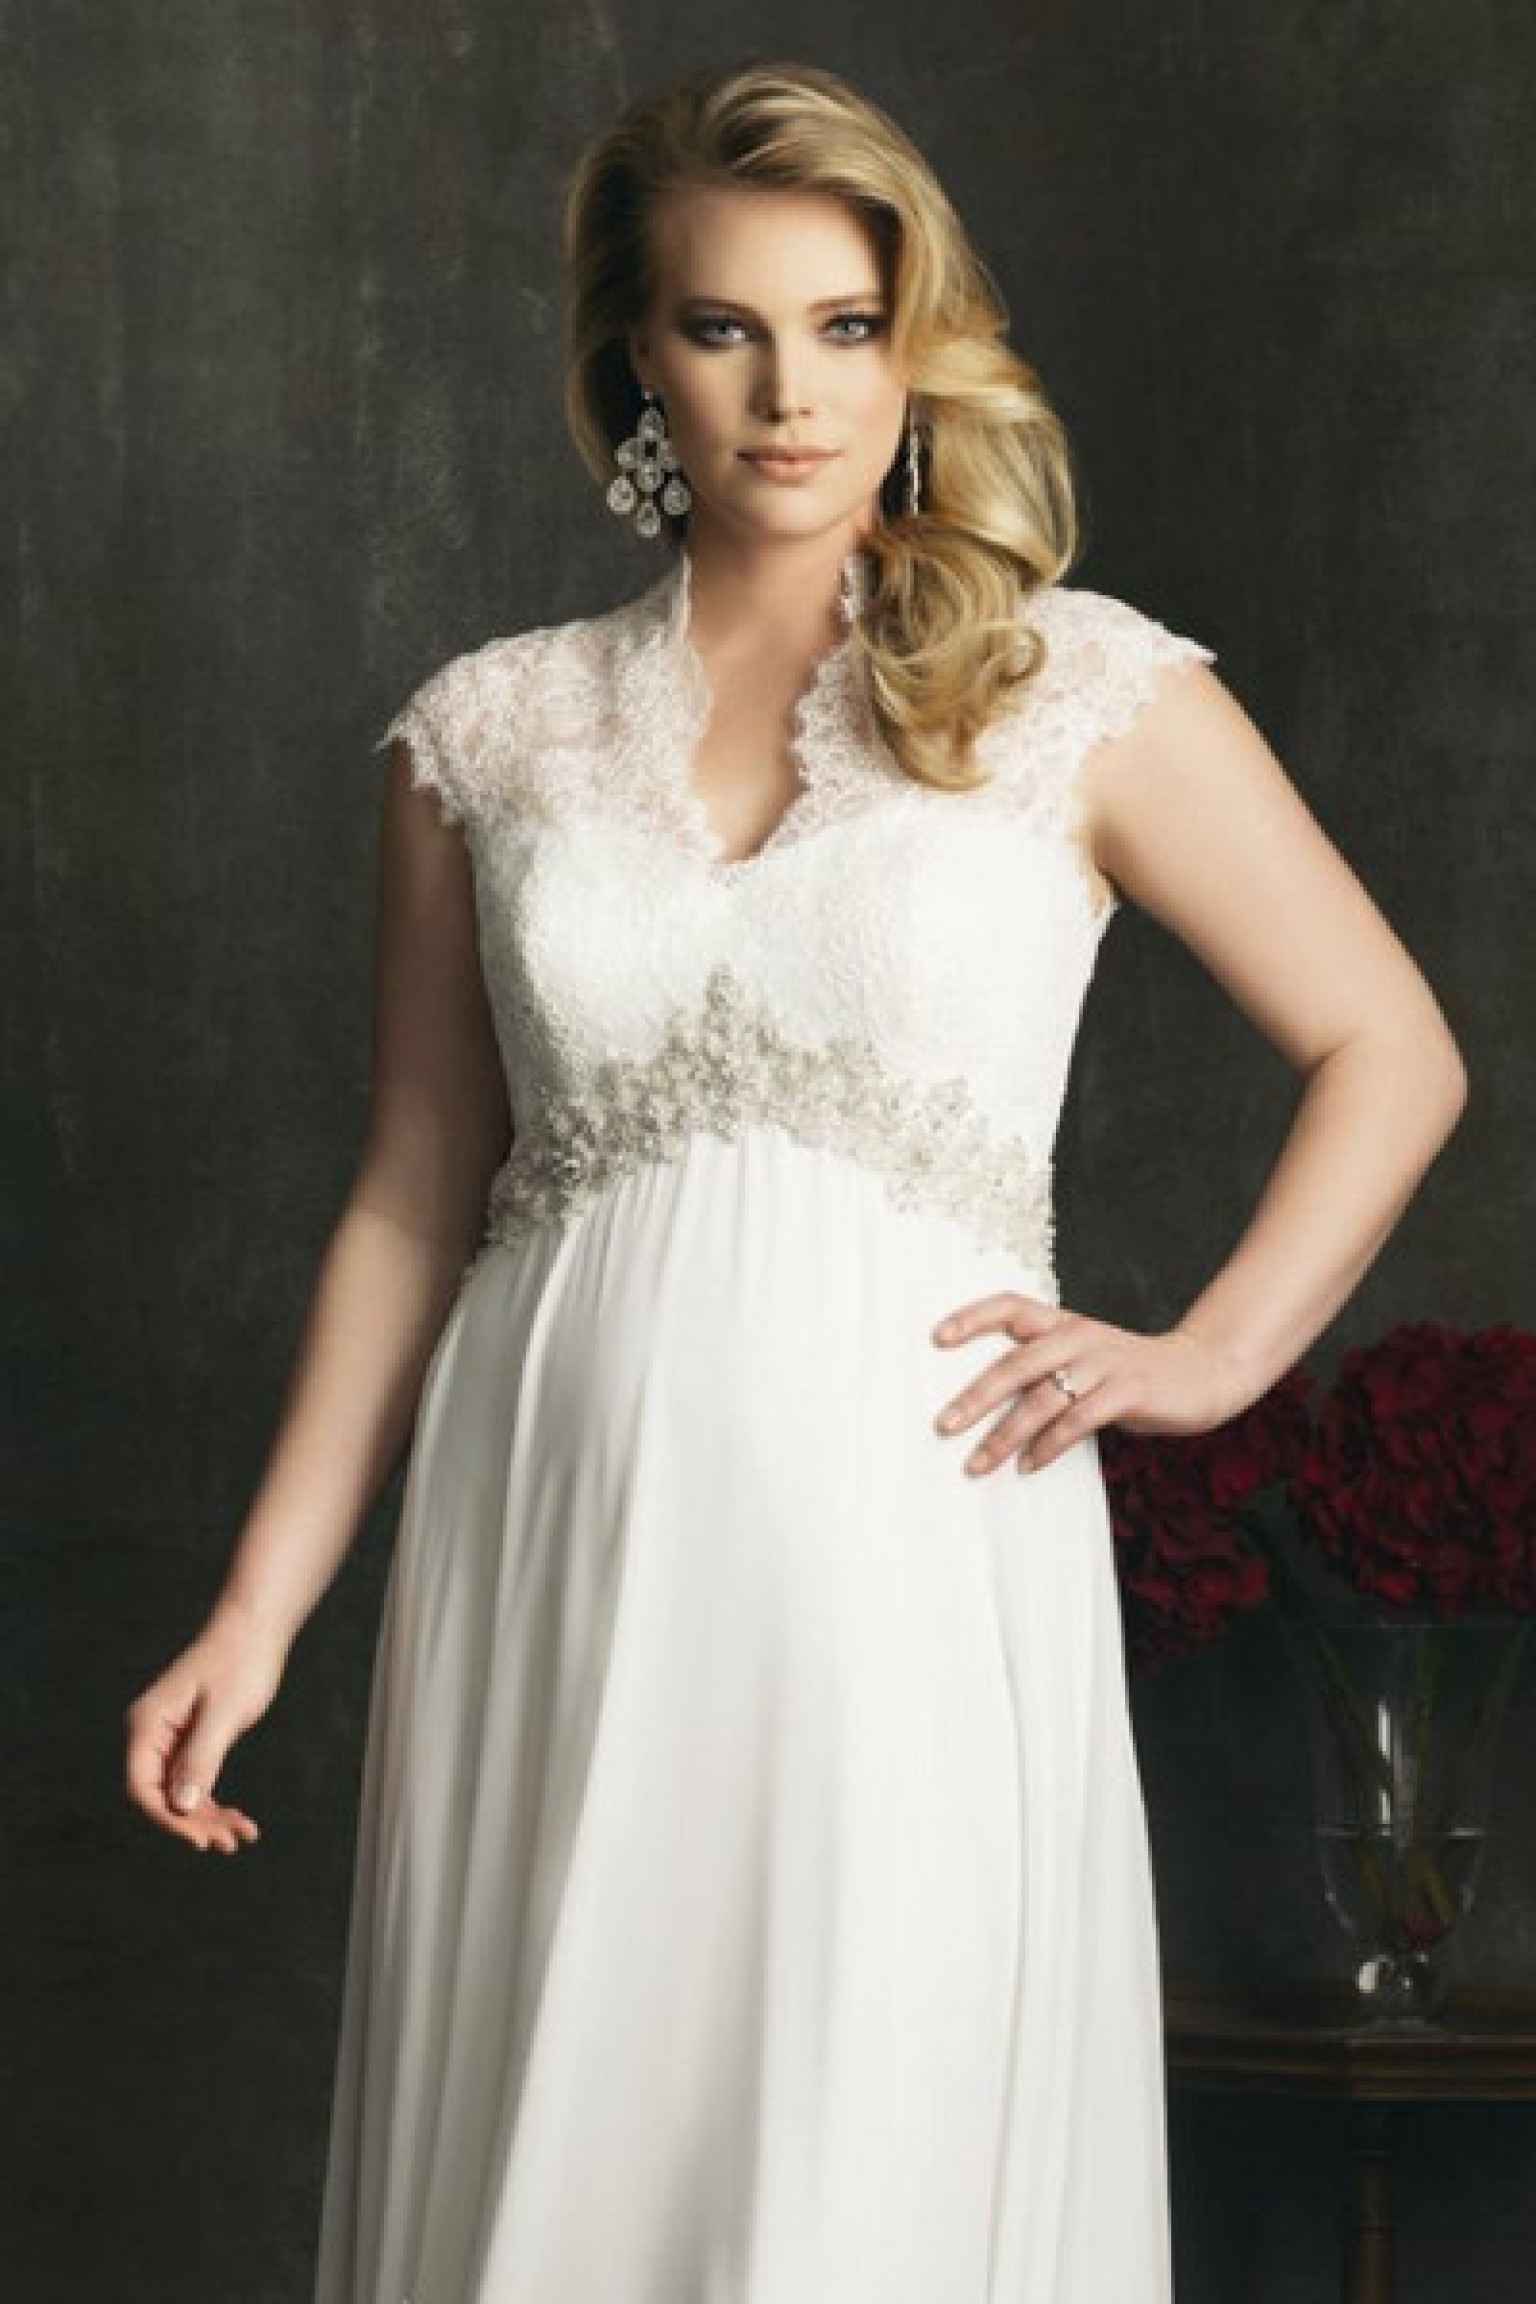 Plus size small bust dresses for wedding